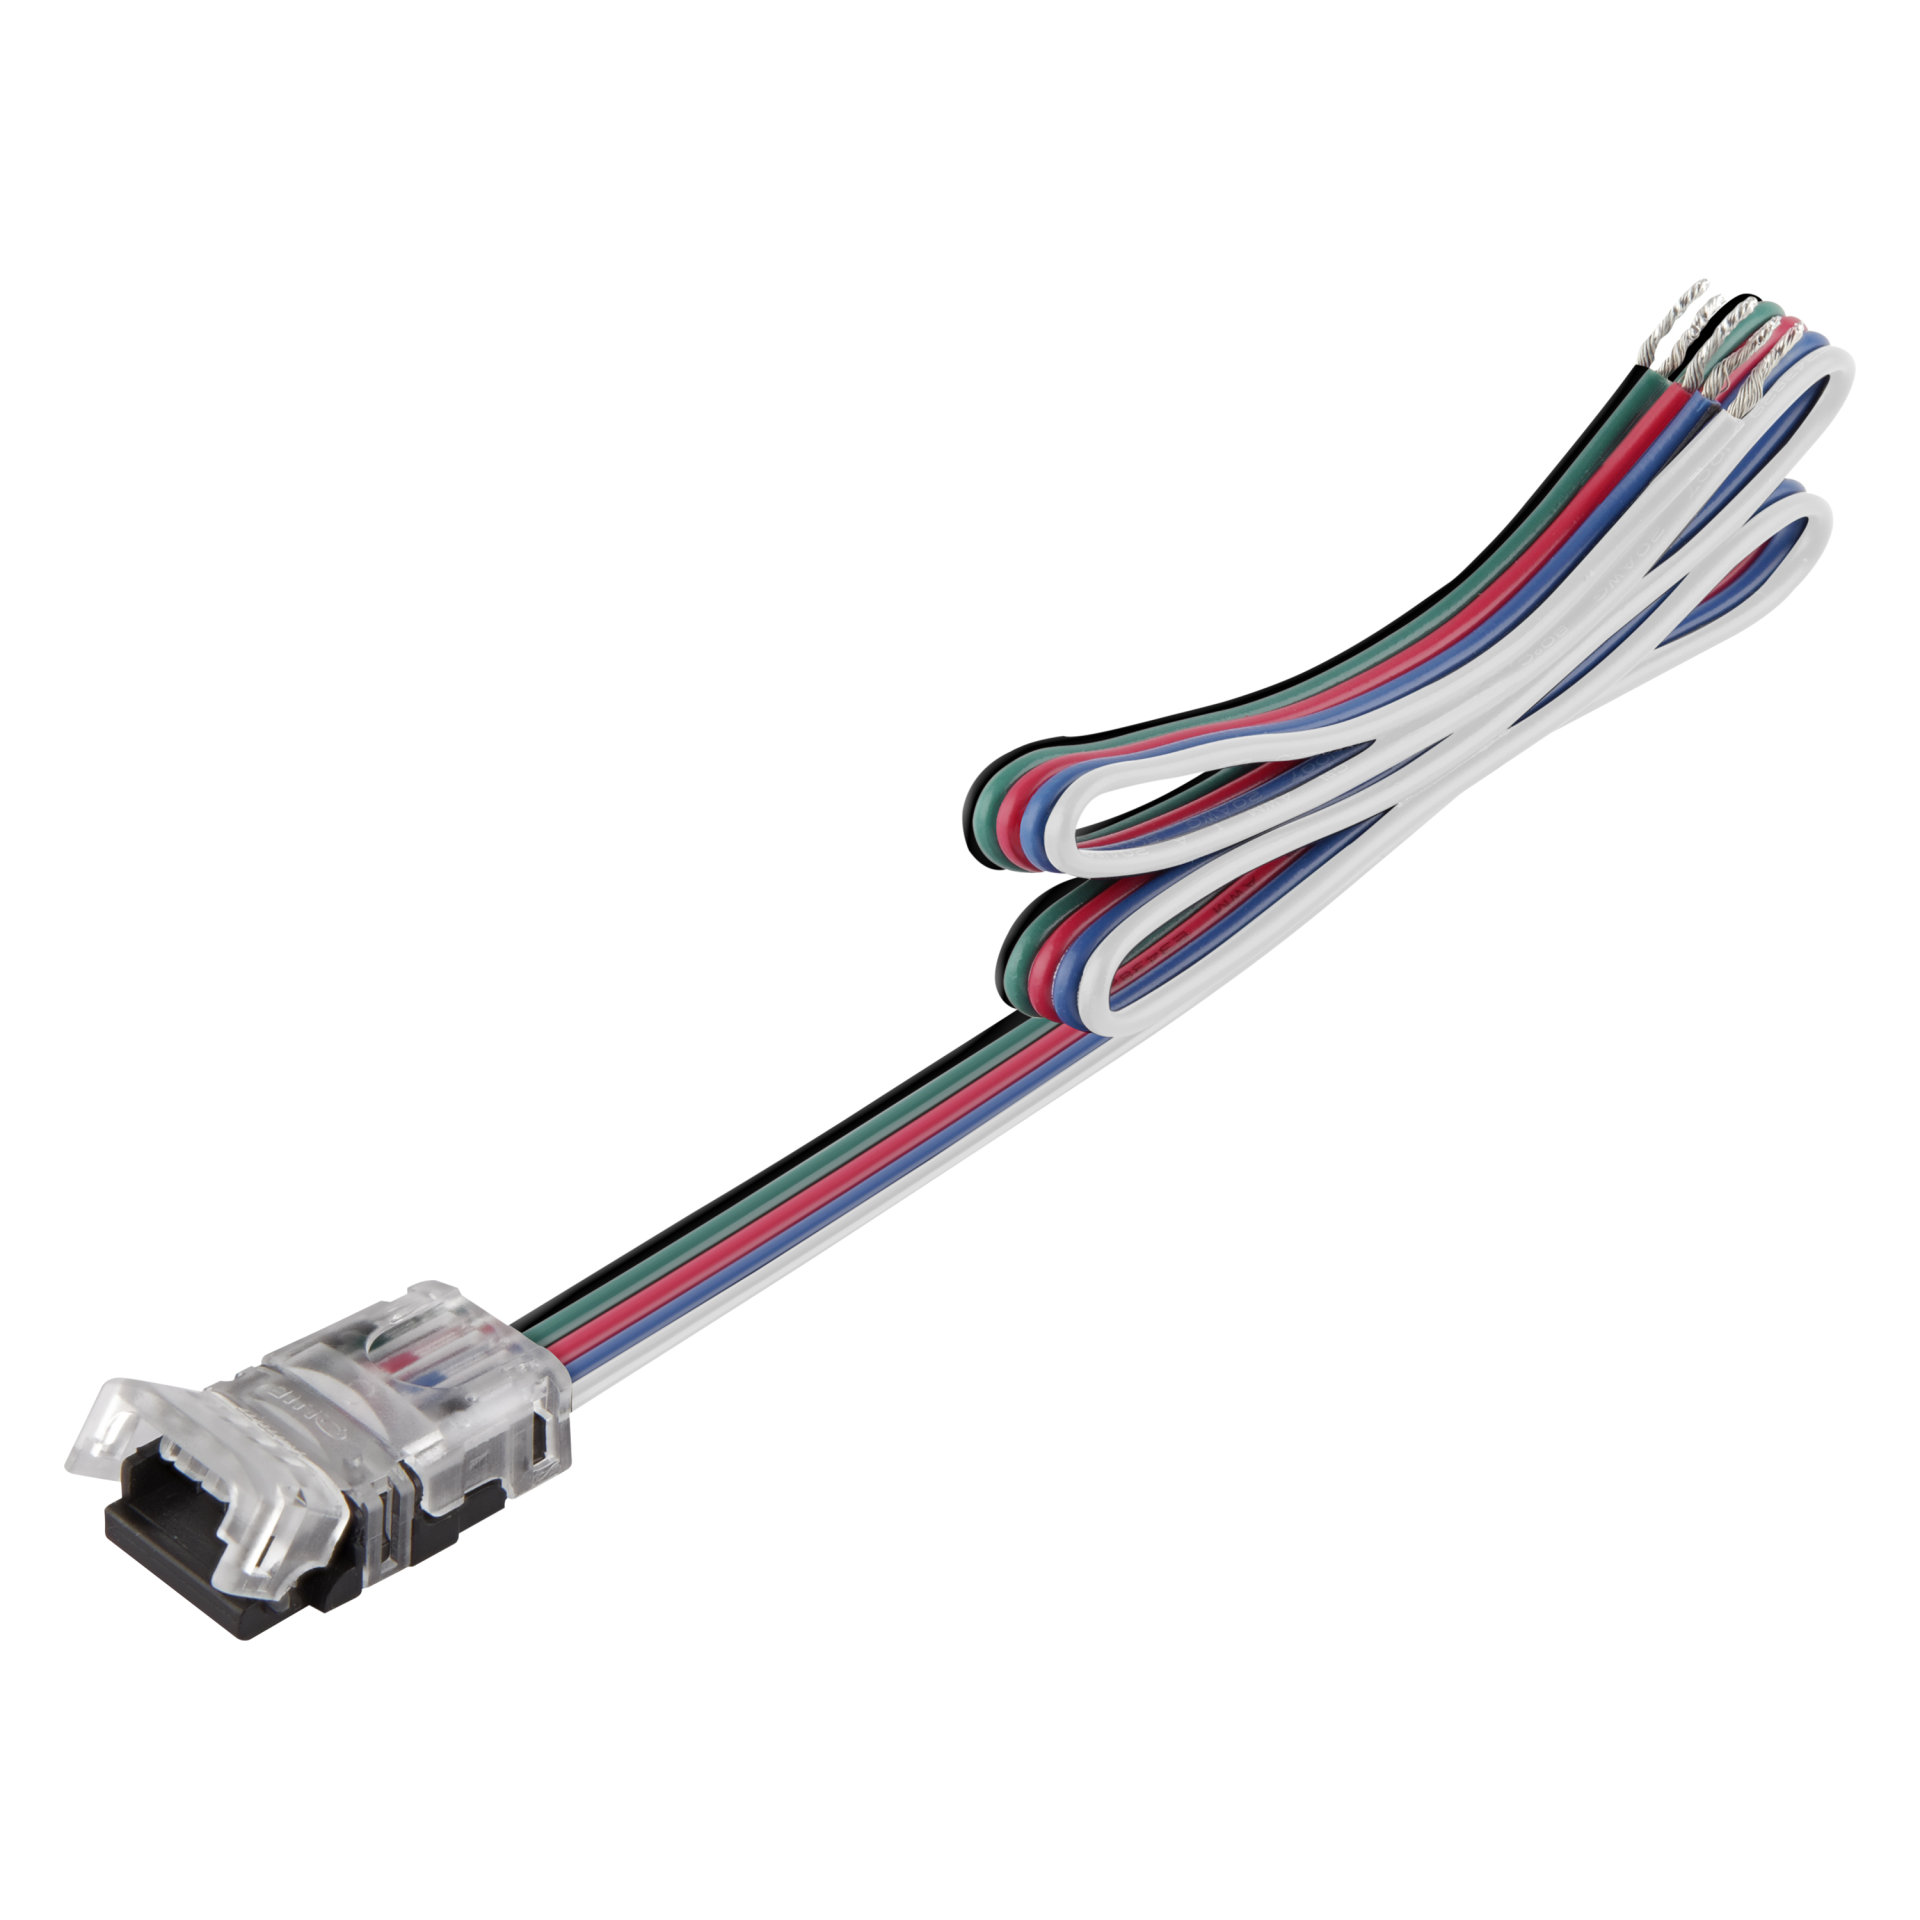 RGBW LED Strip Connectors Connettori per strisce LED RGBW professionali